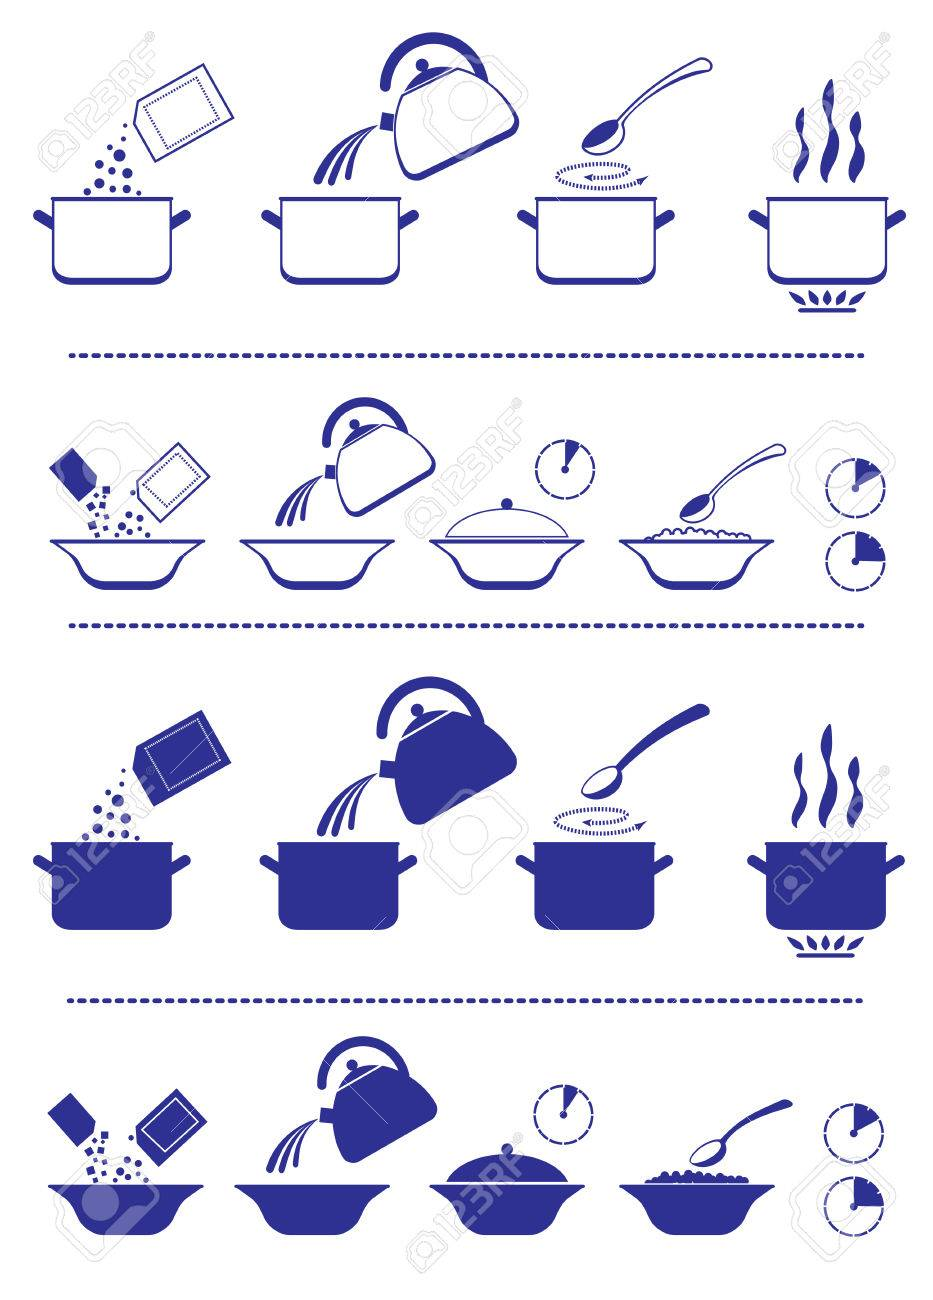 Infographic for manuals on a packing. - 53155746